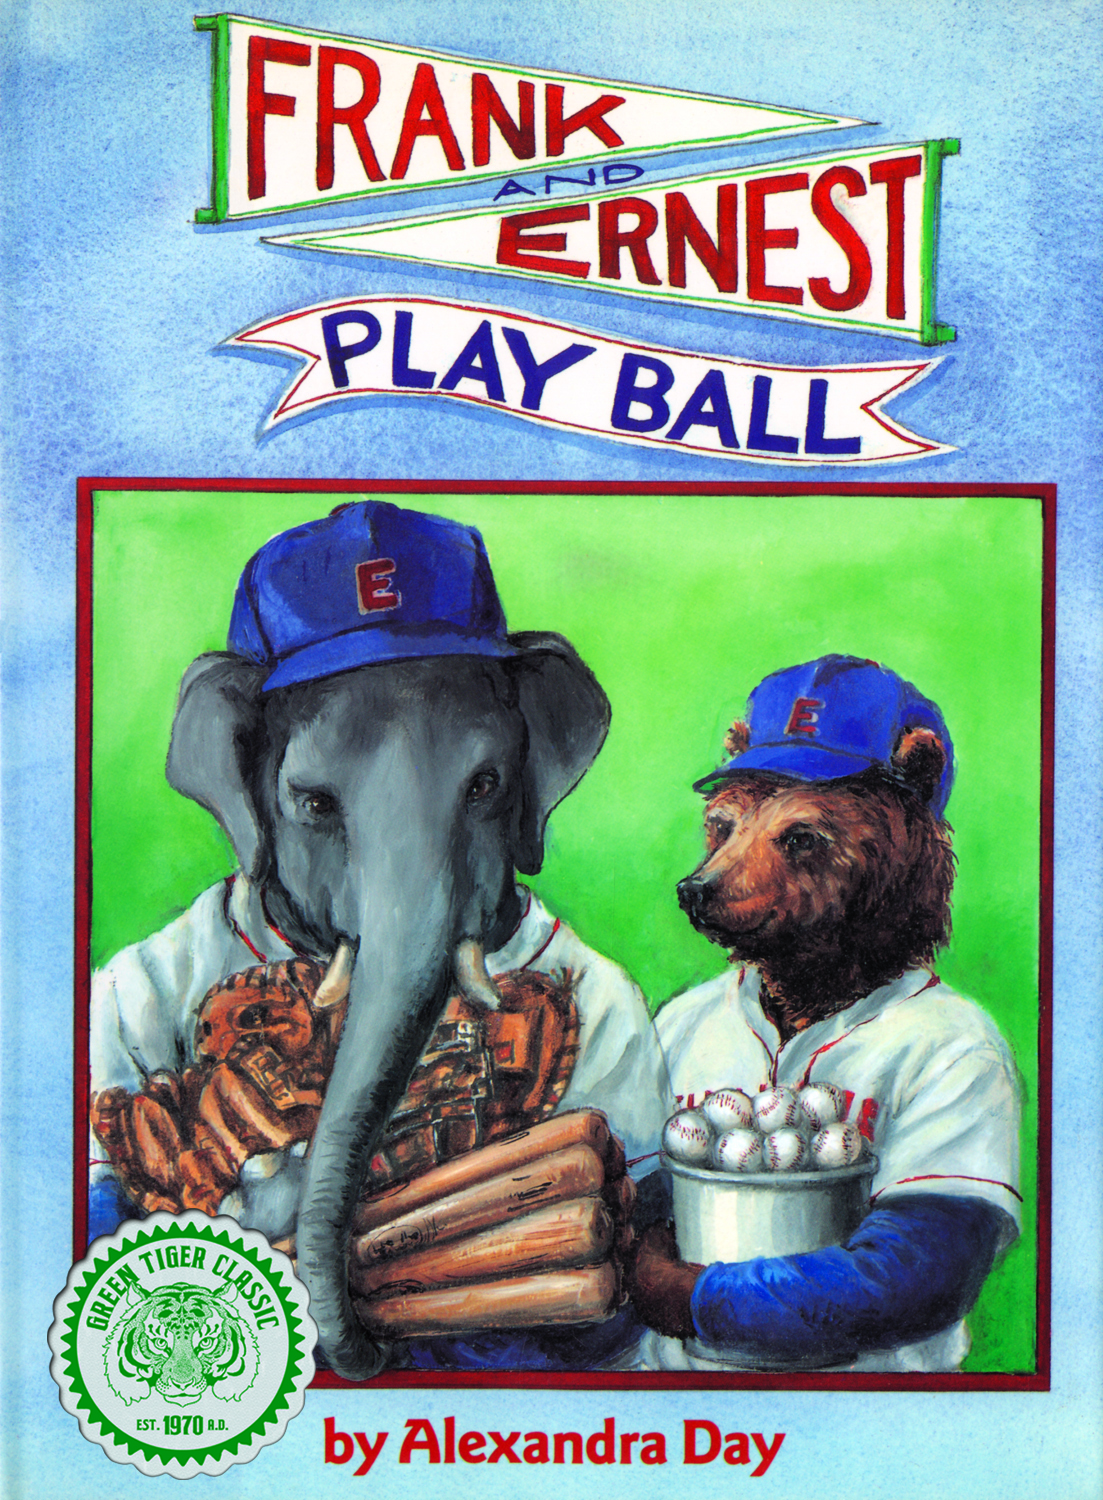 """Frank and Ernest Play Ball"" Cover by Alexandra Day"